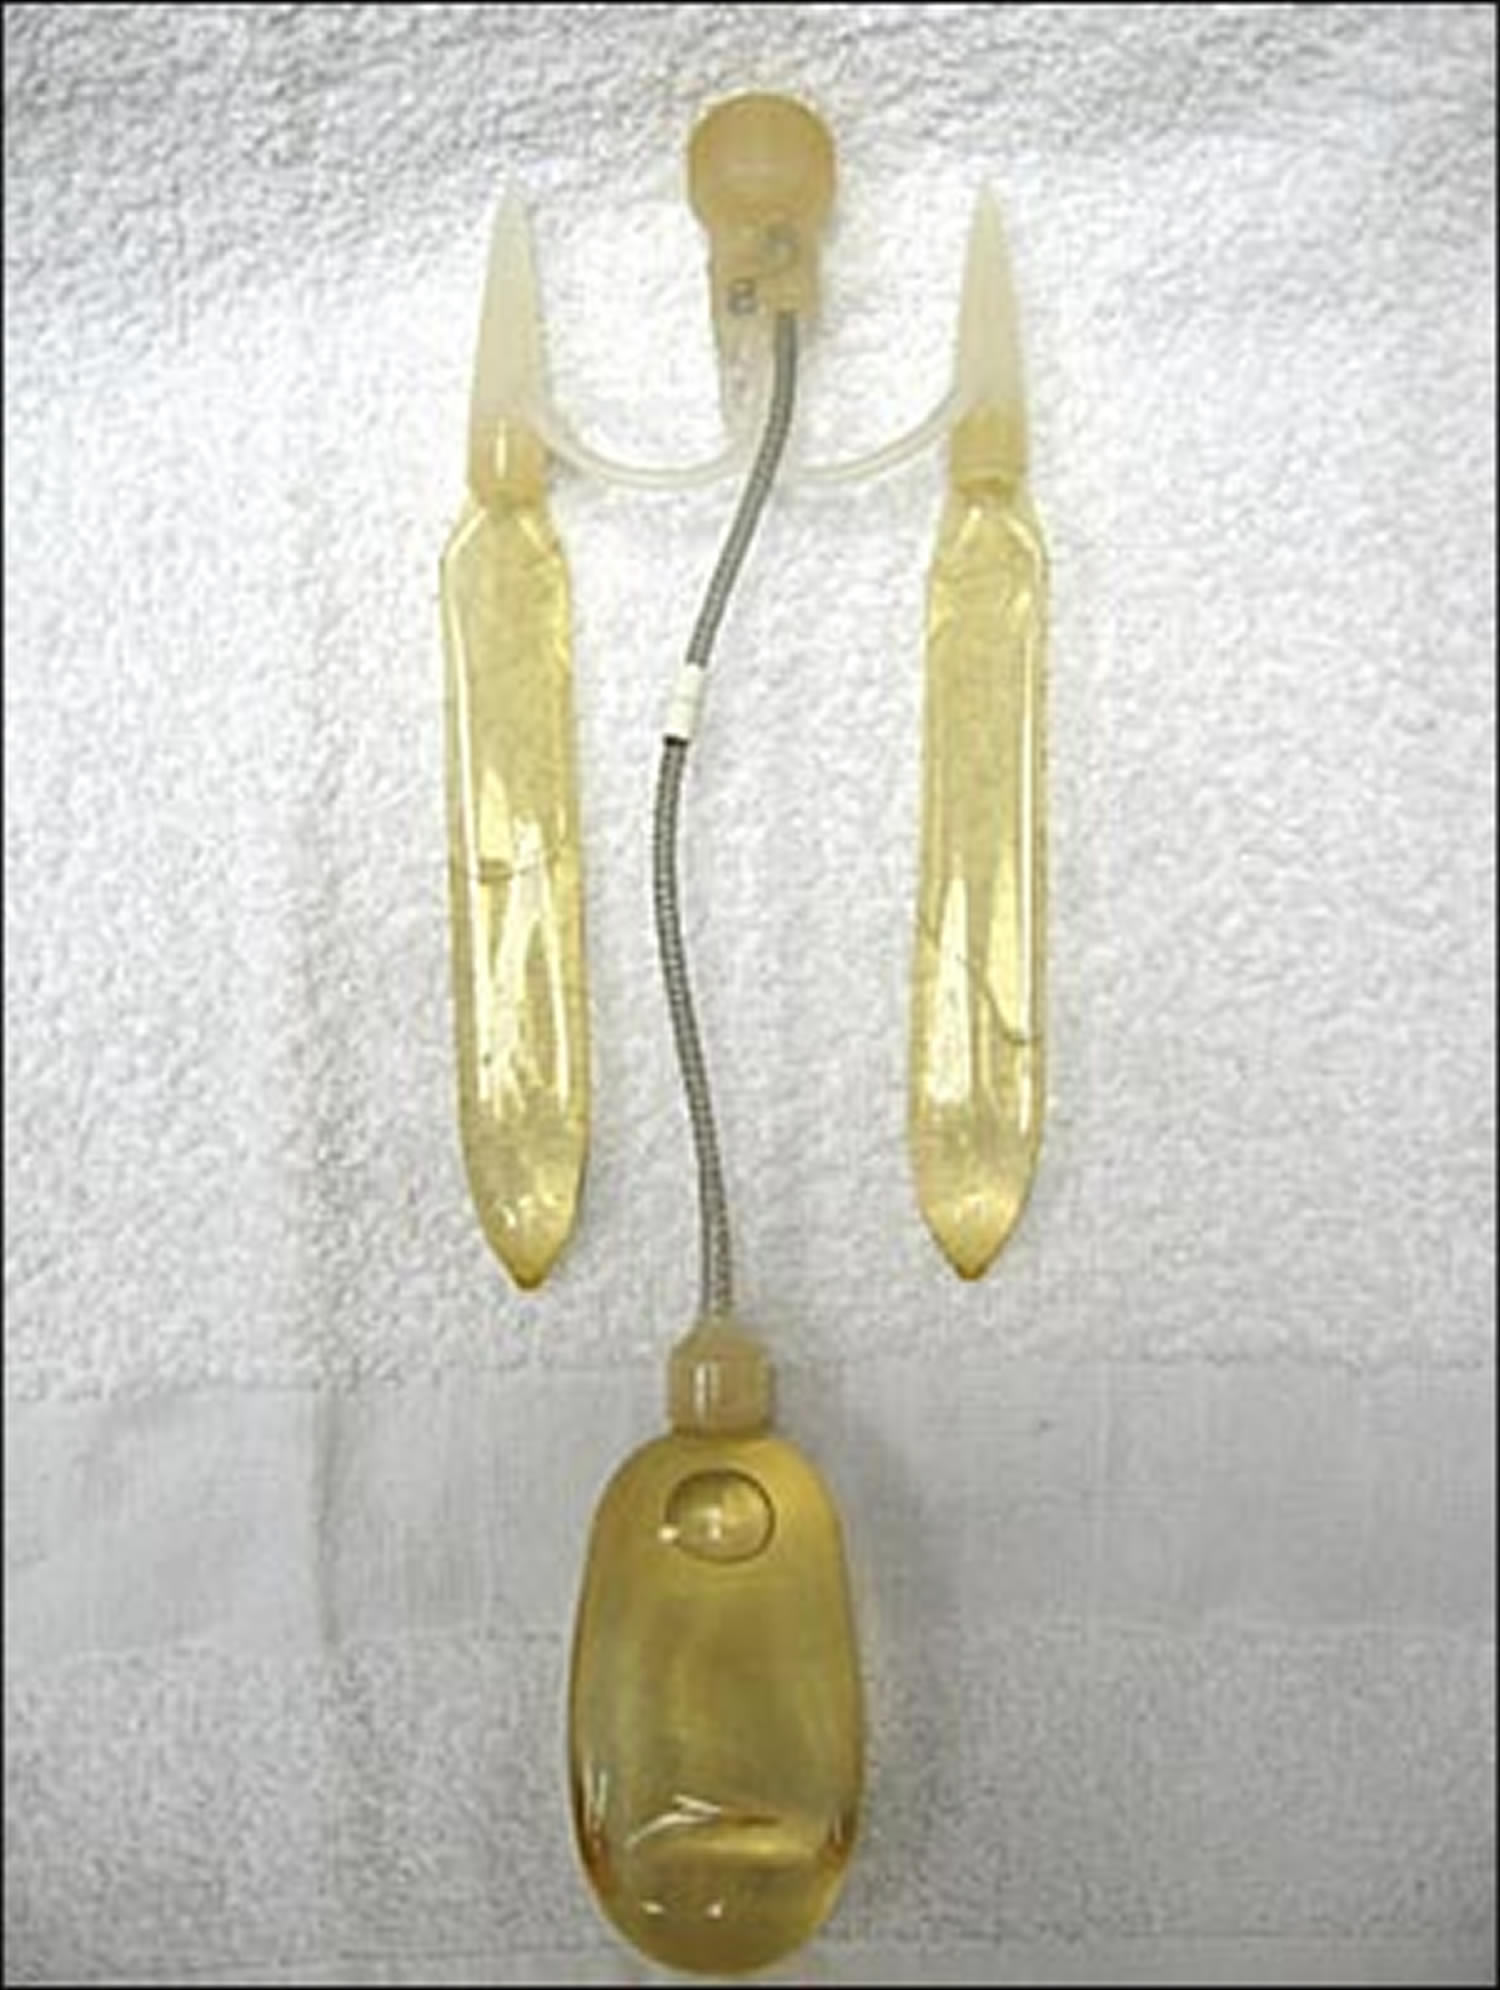 inflatable penile prosthesis